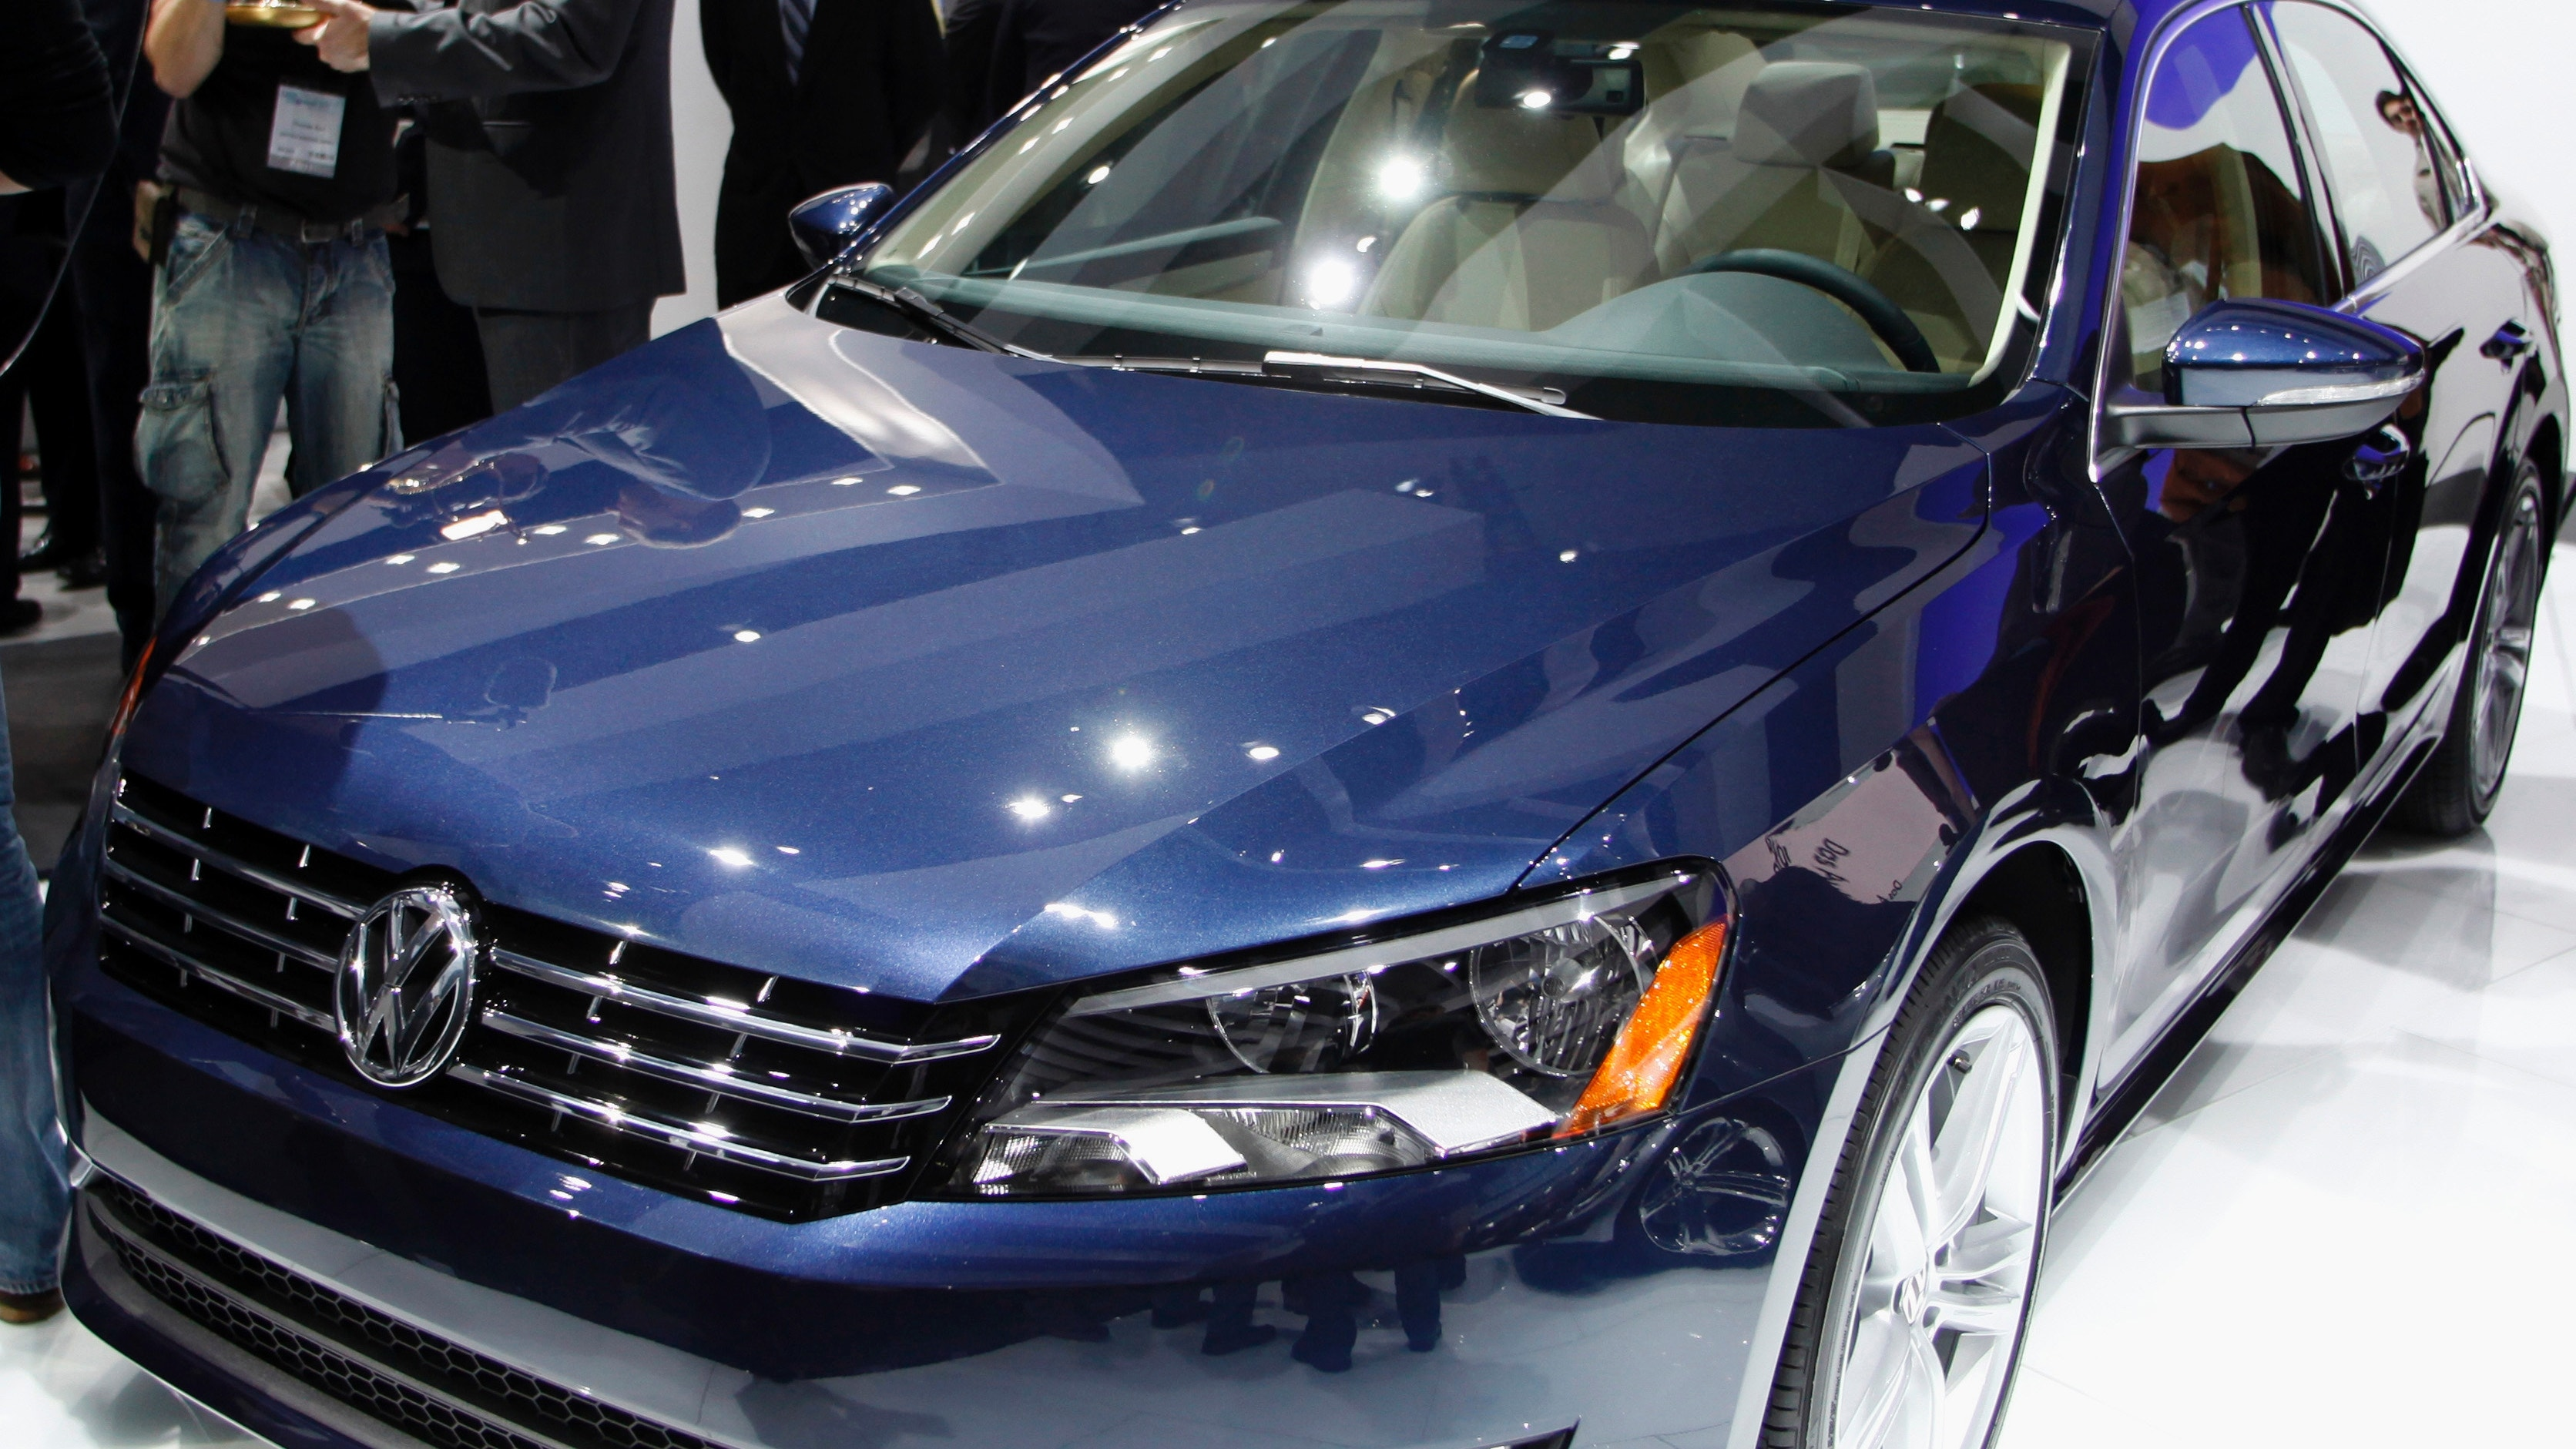 chrysler and fiat merger Volkswagen seems poised to begin discussions with fiat chrysler about an alliance or merger here's why it makes sense for them to join forces.